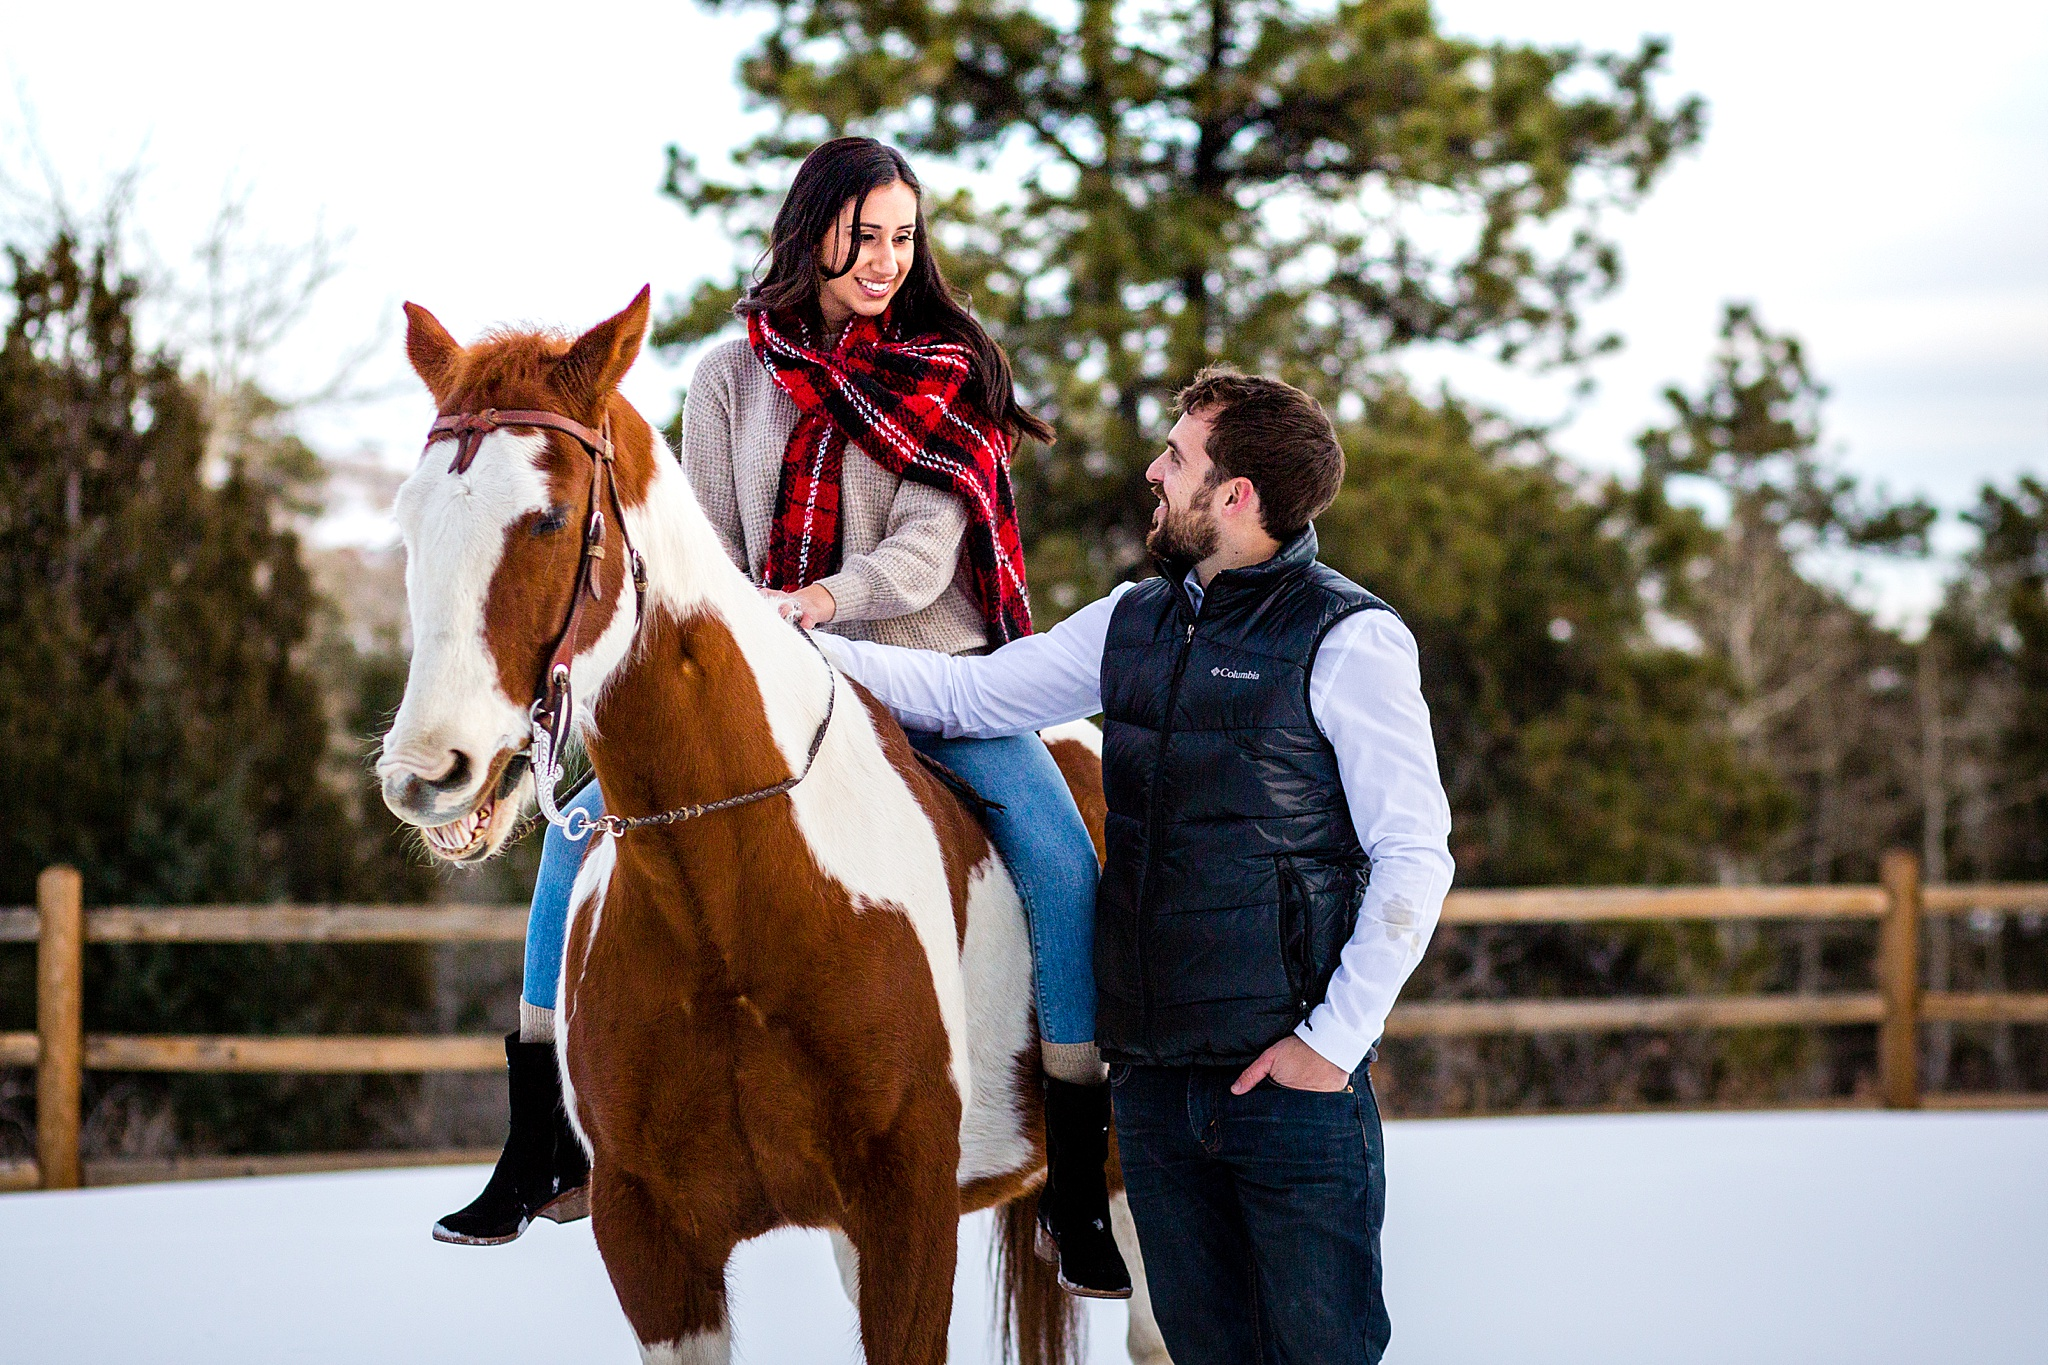 Morrison Private Ranch Engagement Session with Horses. Colorado Engagement Photography by All Digital Photo & Video. Morrison Engagement Photography, Horse Engagement Session, Ranch Engagement Session, Colorado Engagement Photos, Mountain Engagement Photos, Winter Engagement Photos, Snowy Engagement Photos, Mountain Engagement Photography, Denver Engagement Photography, Rocky Mountain Engagement